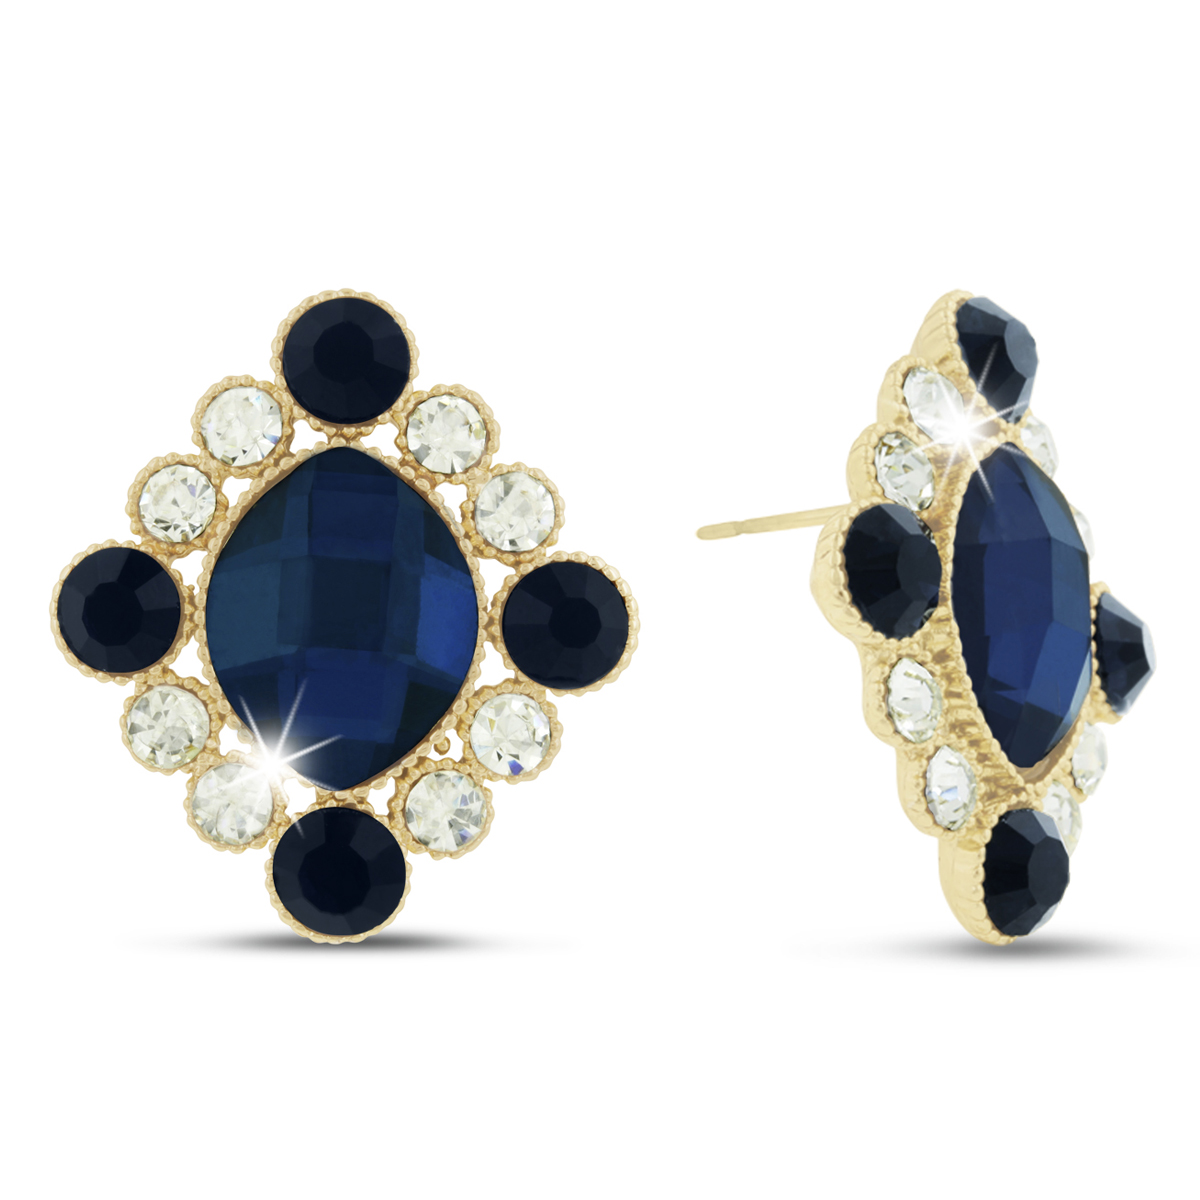 Royal Blue Swarovski Elements Antique Stud Earrings, Pushbacks by SuperJeweler